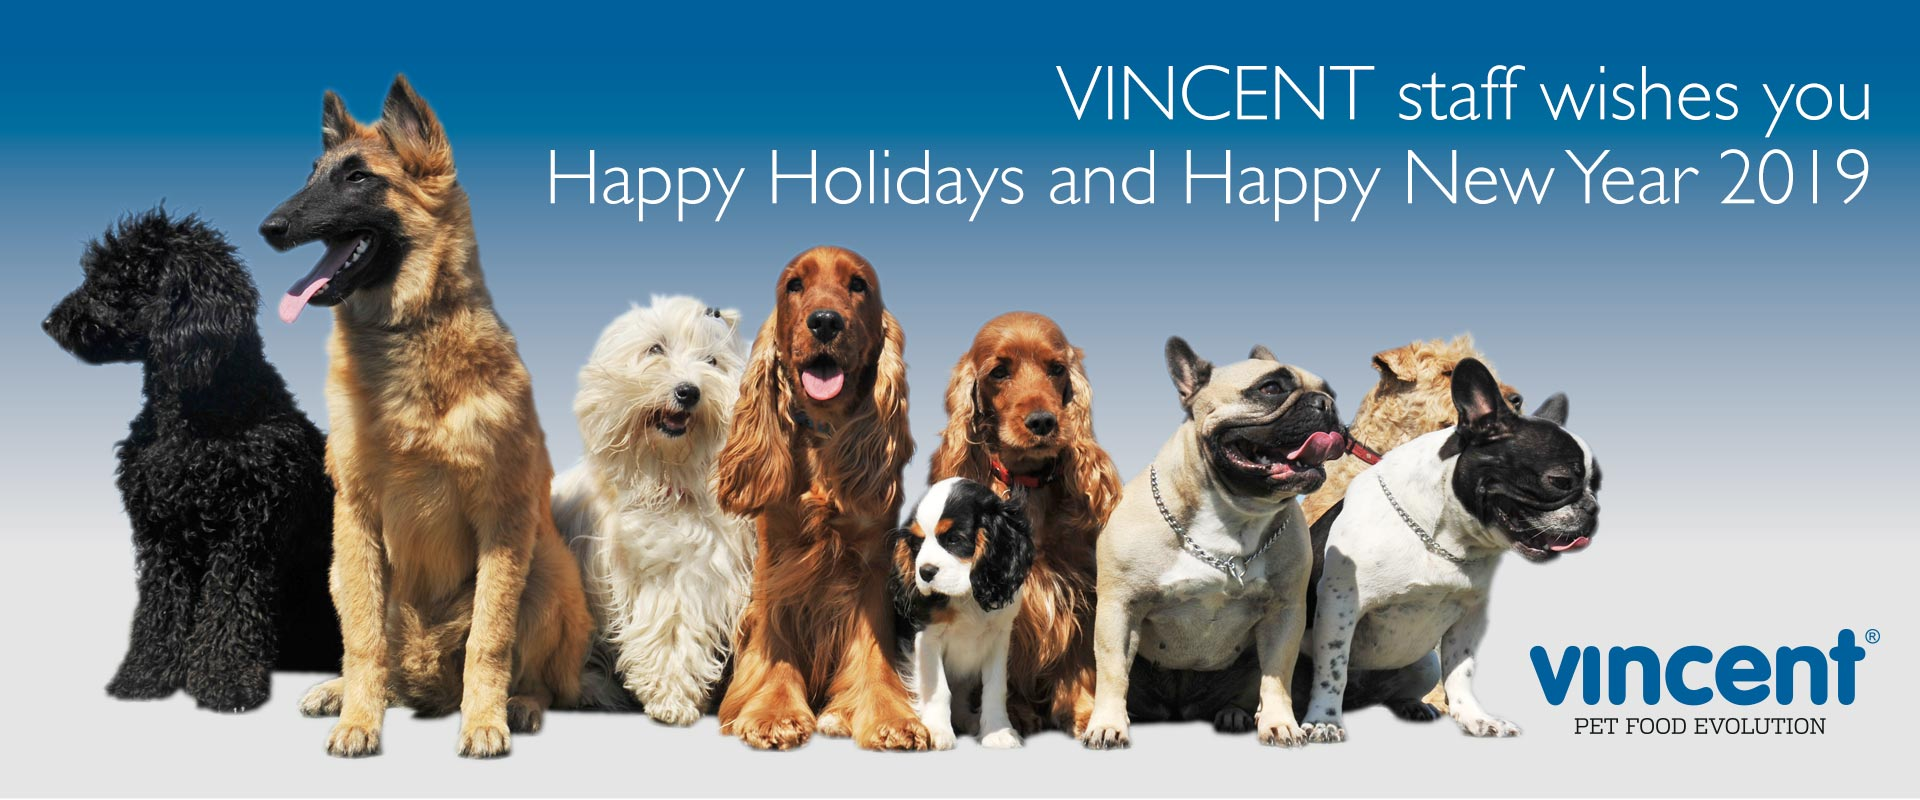 Vincent staff wishes you Happy Holidays